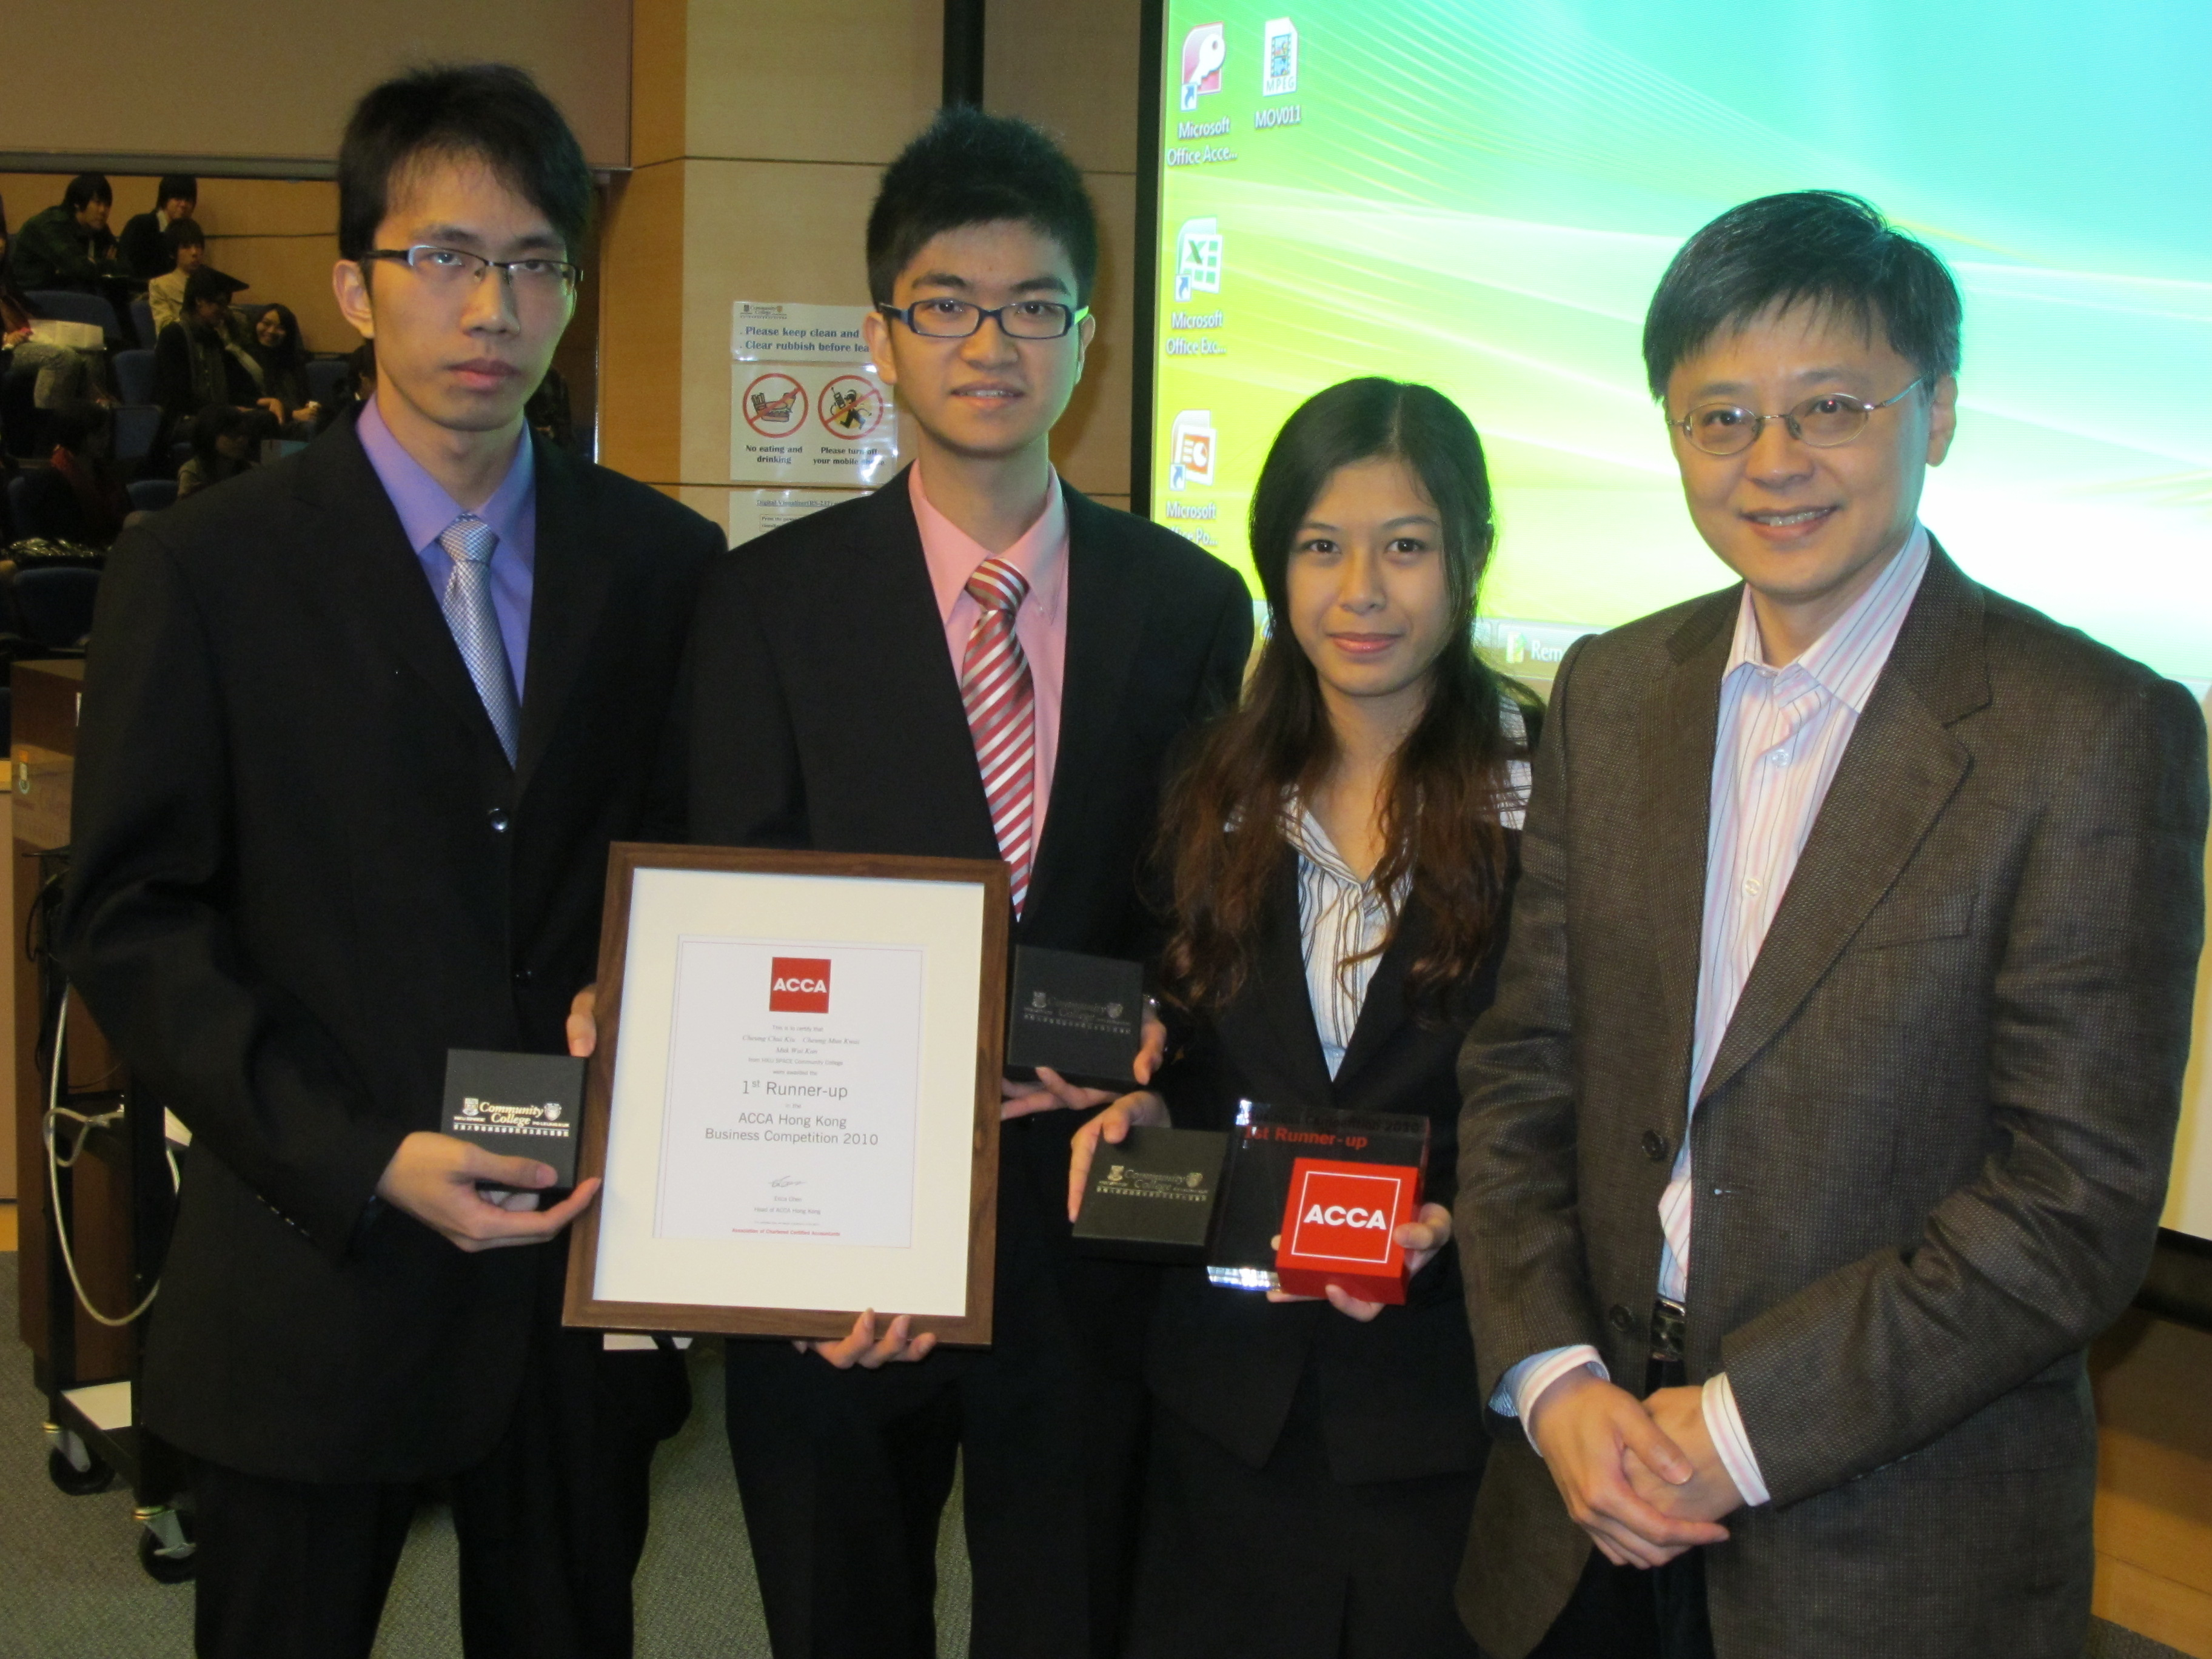 ACCA Hong Kong Business Competition 2010 - Photo - 15